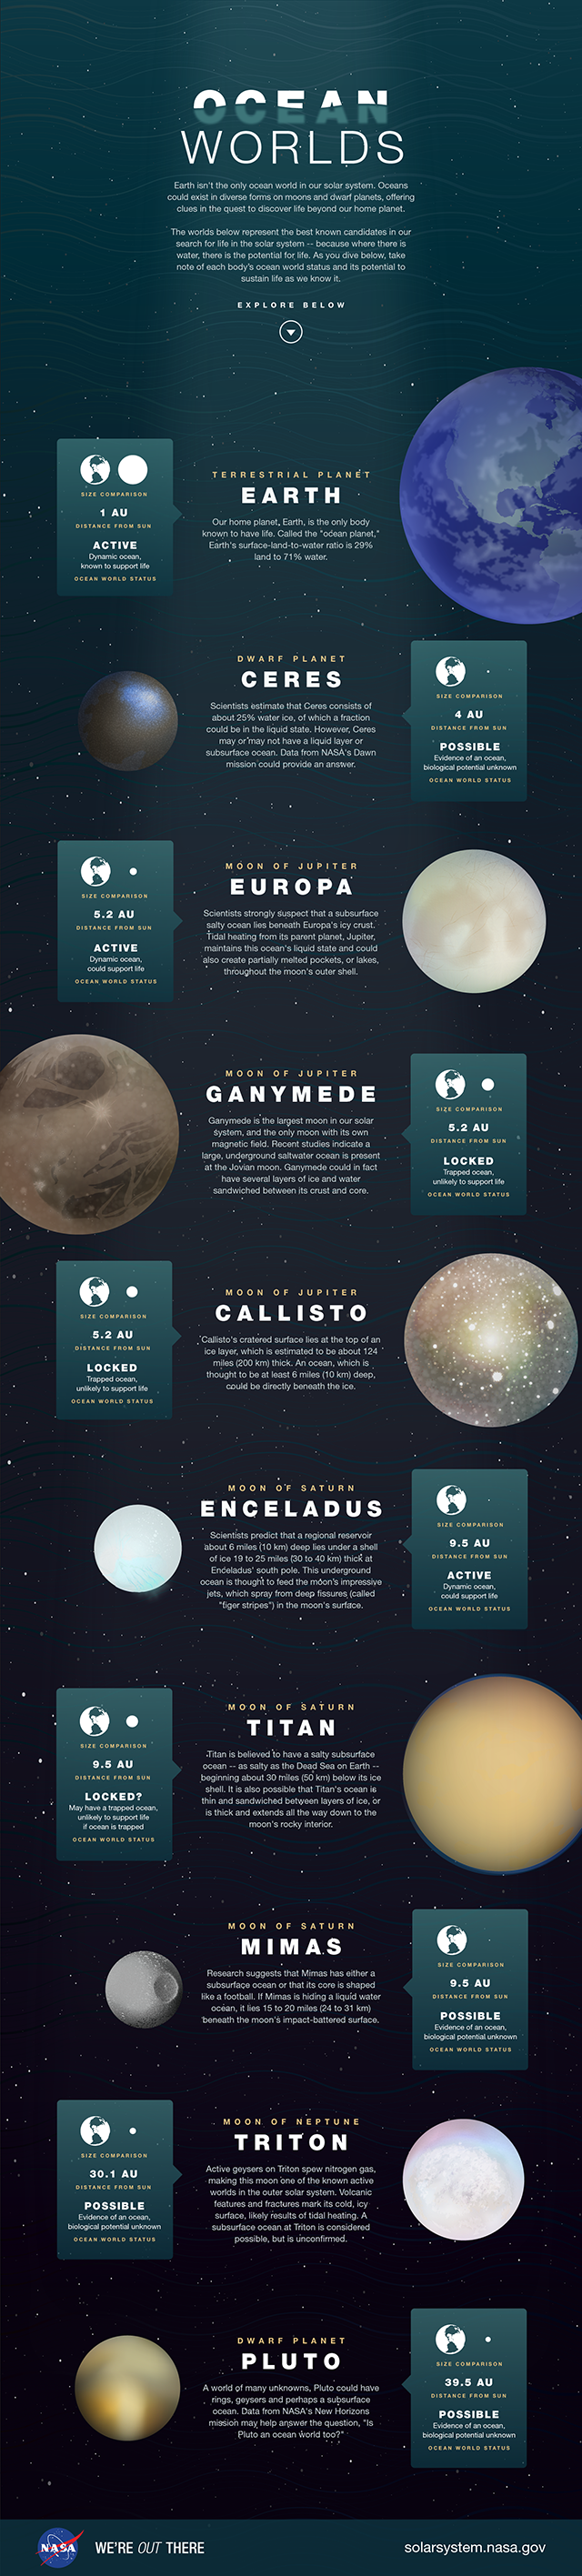 Infographic showing the best-known candidates in our search for life in the solar system. (Credit: NASA)